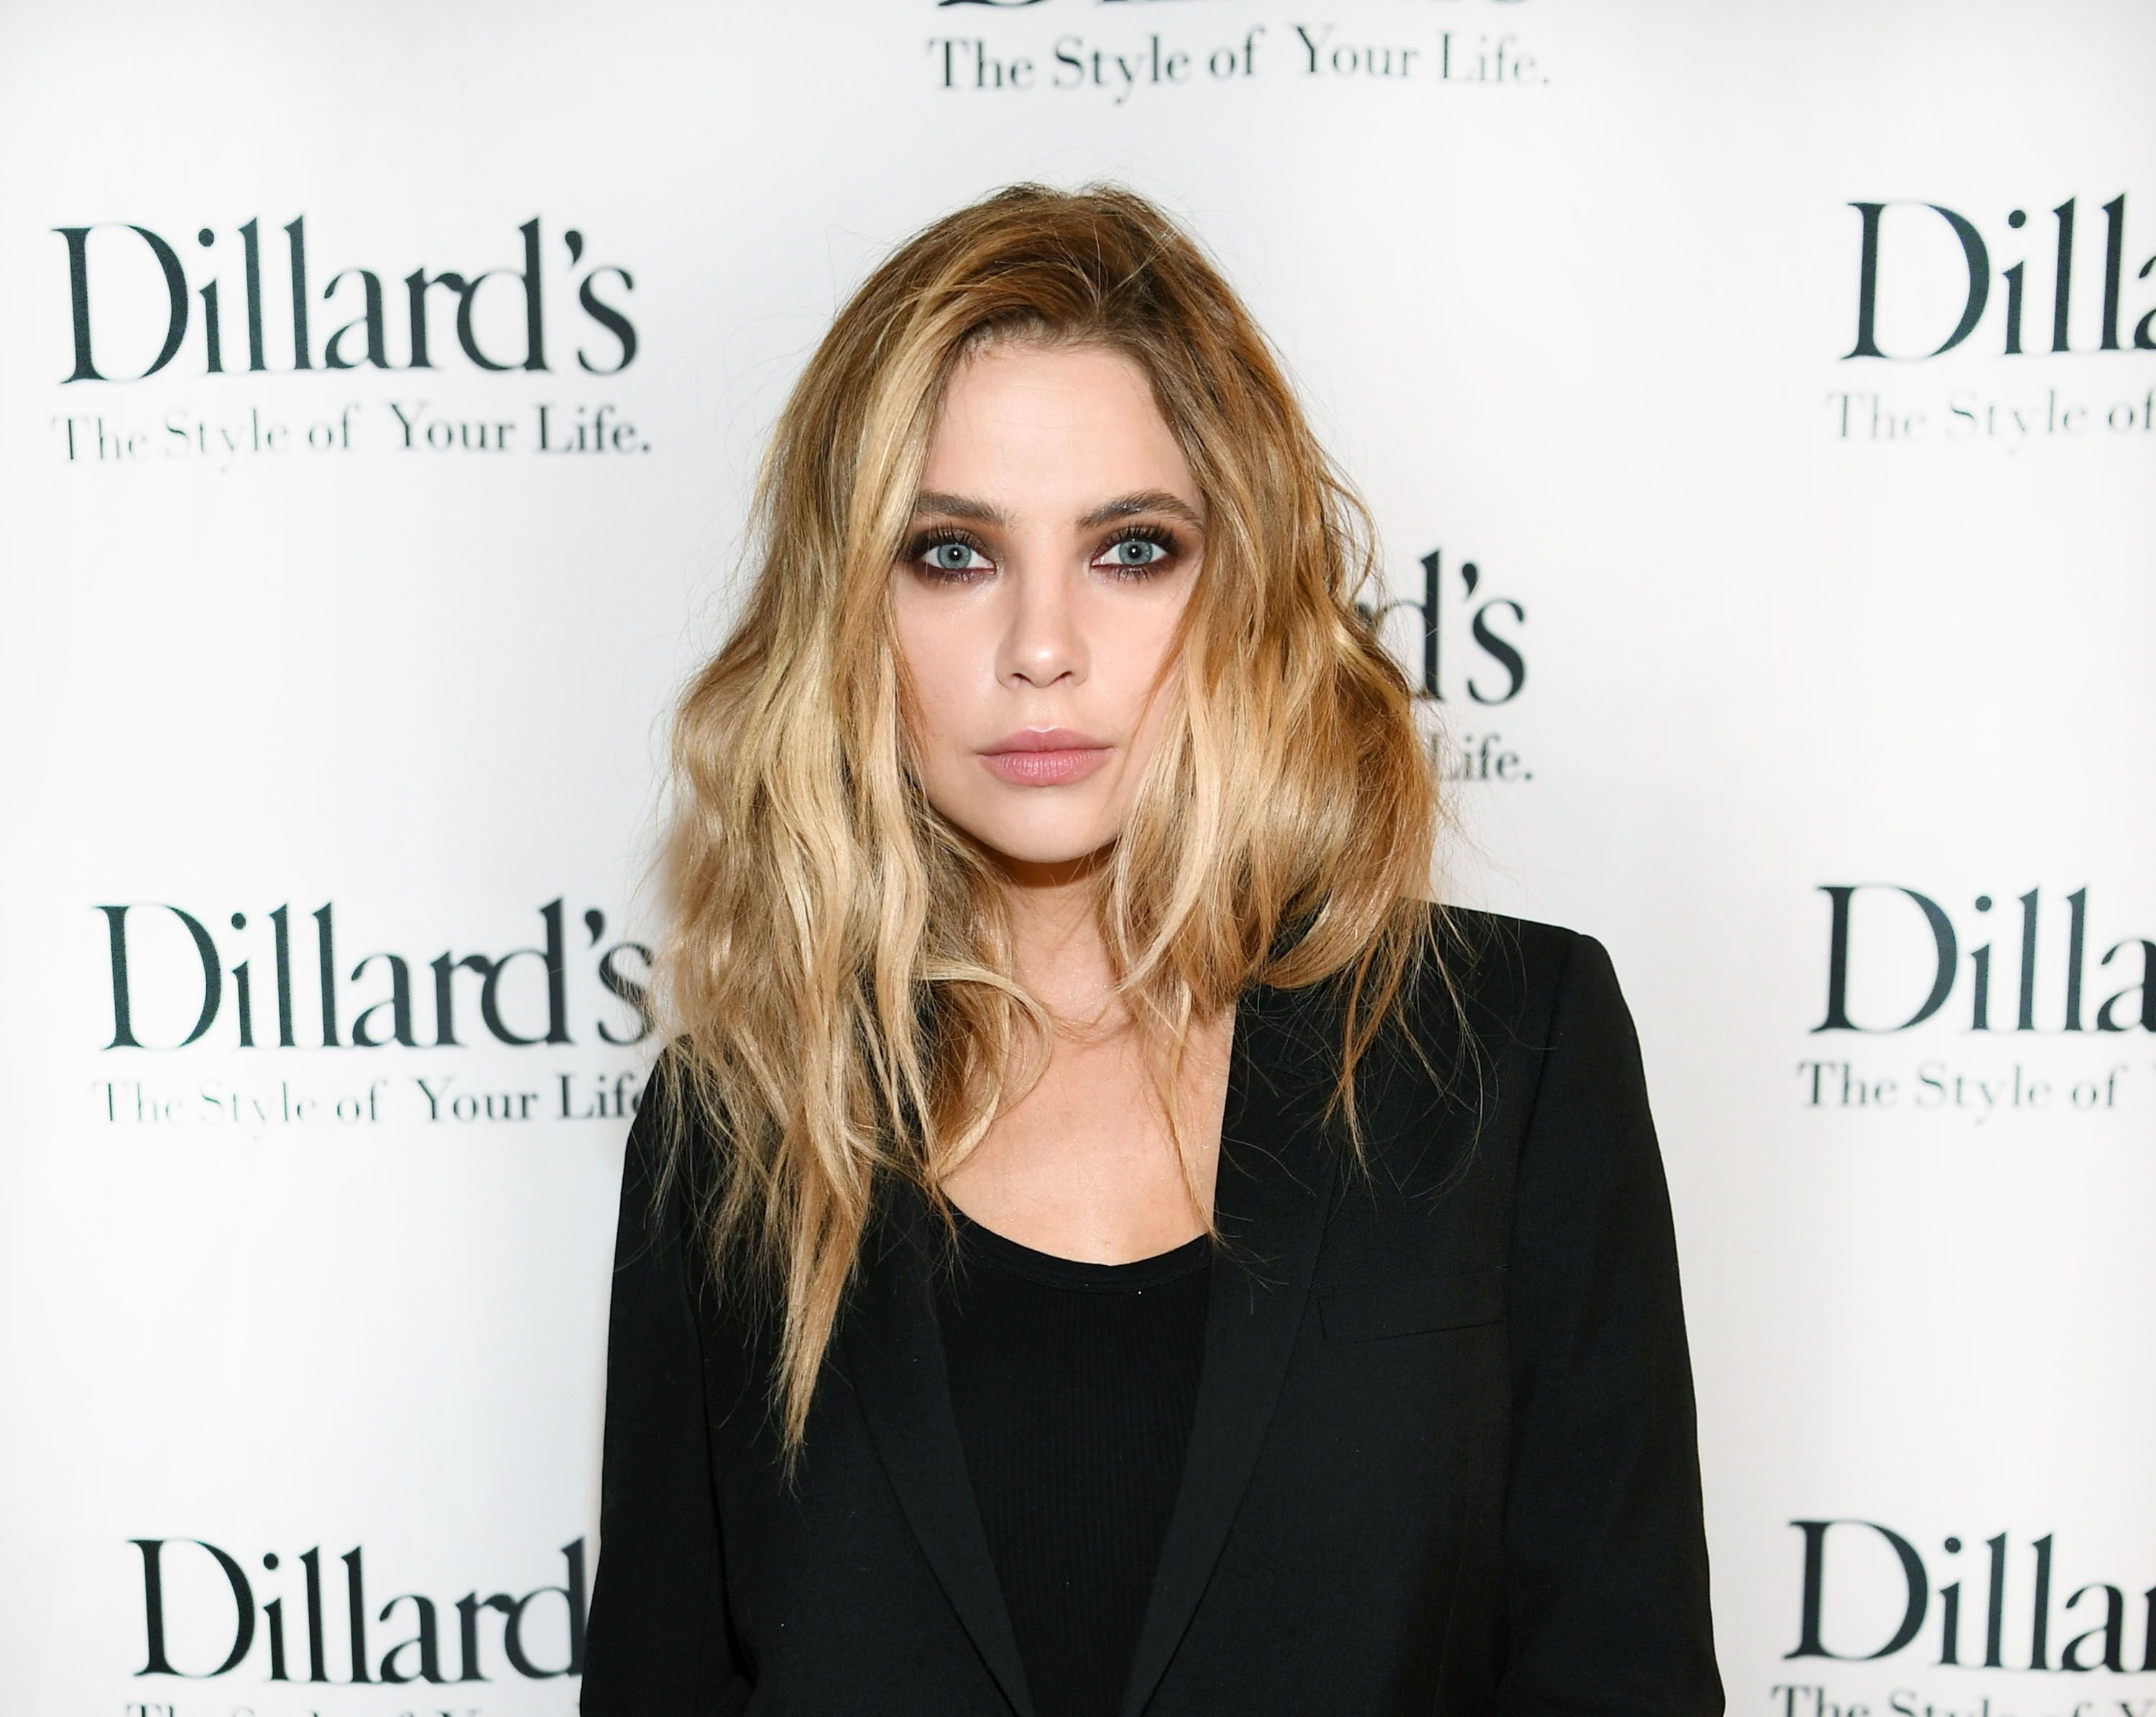 Ashley Benson at the Privé Revaux Eyewear meet & greet event in February 2019 in Las Vegas, Nevada | Source: Getty Images